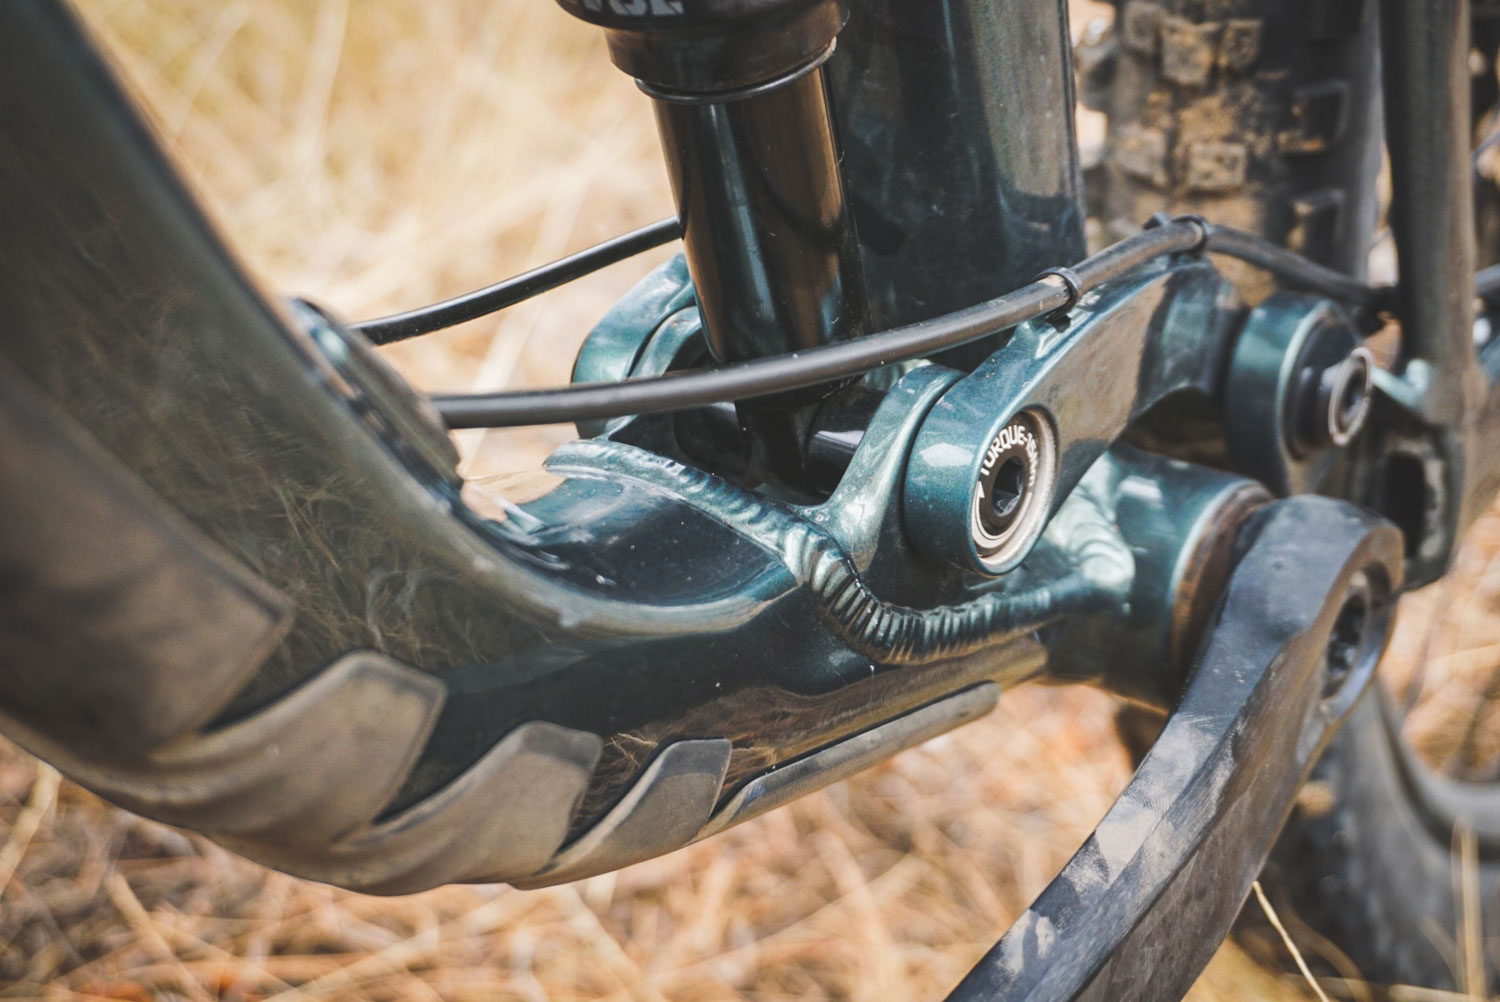 Giant Bicycles Trance X 29 2